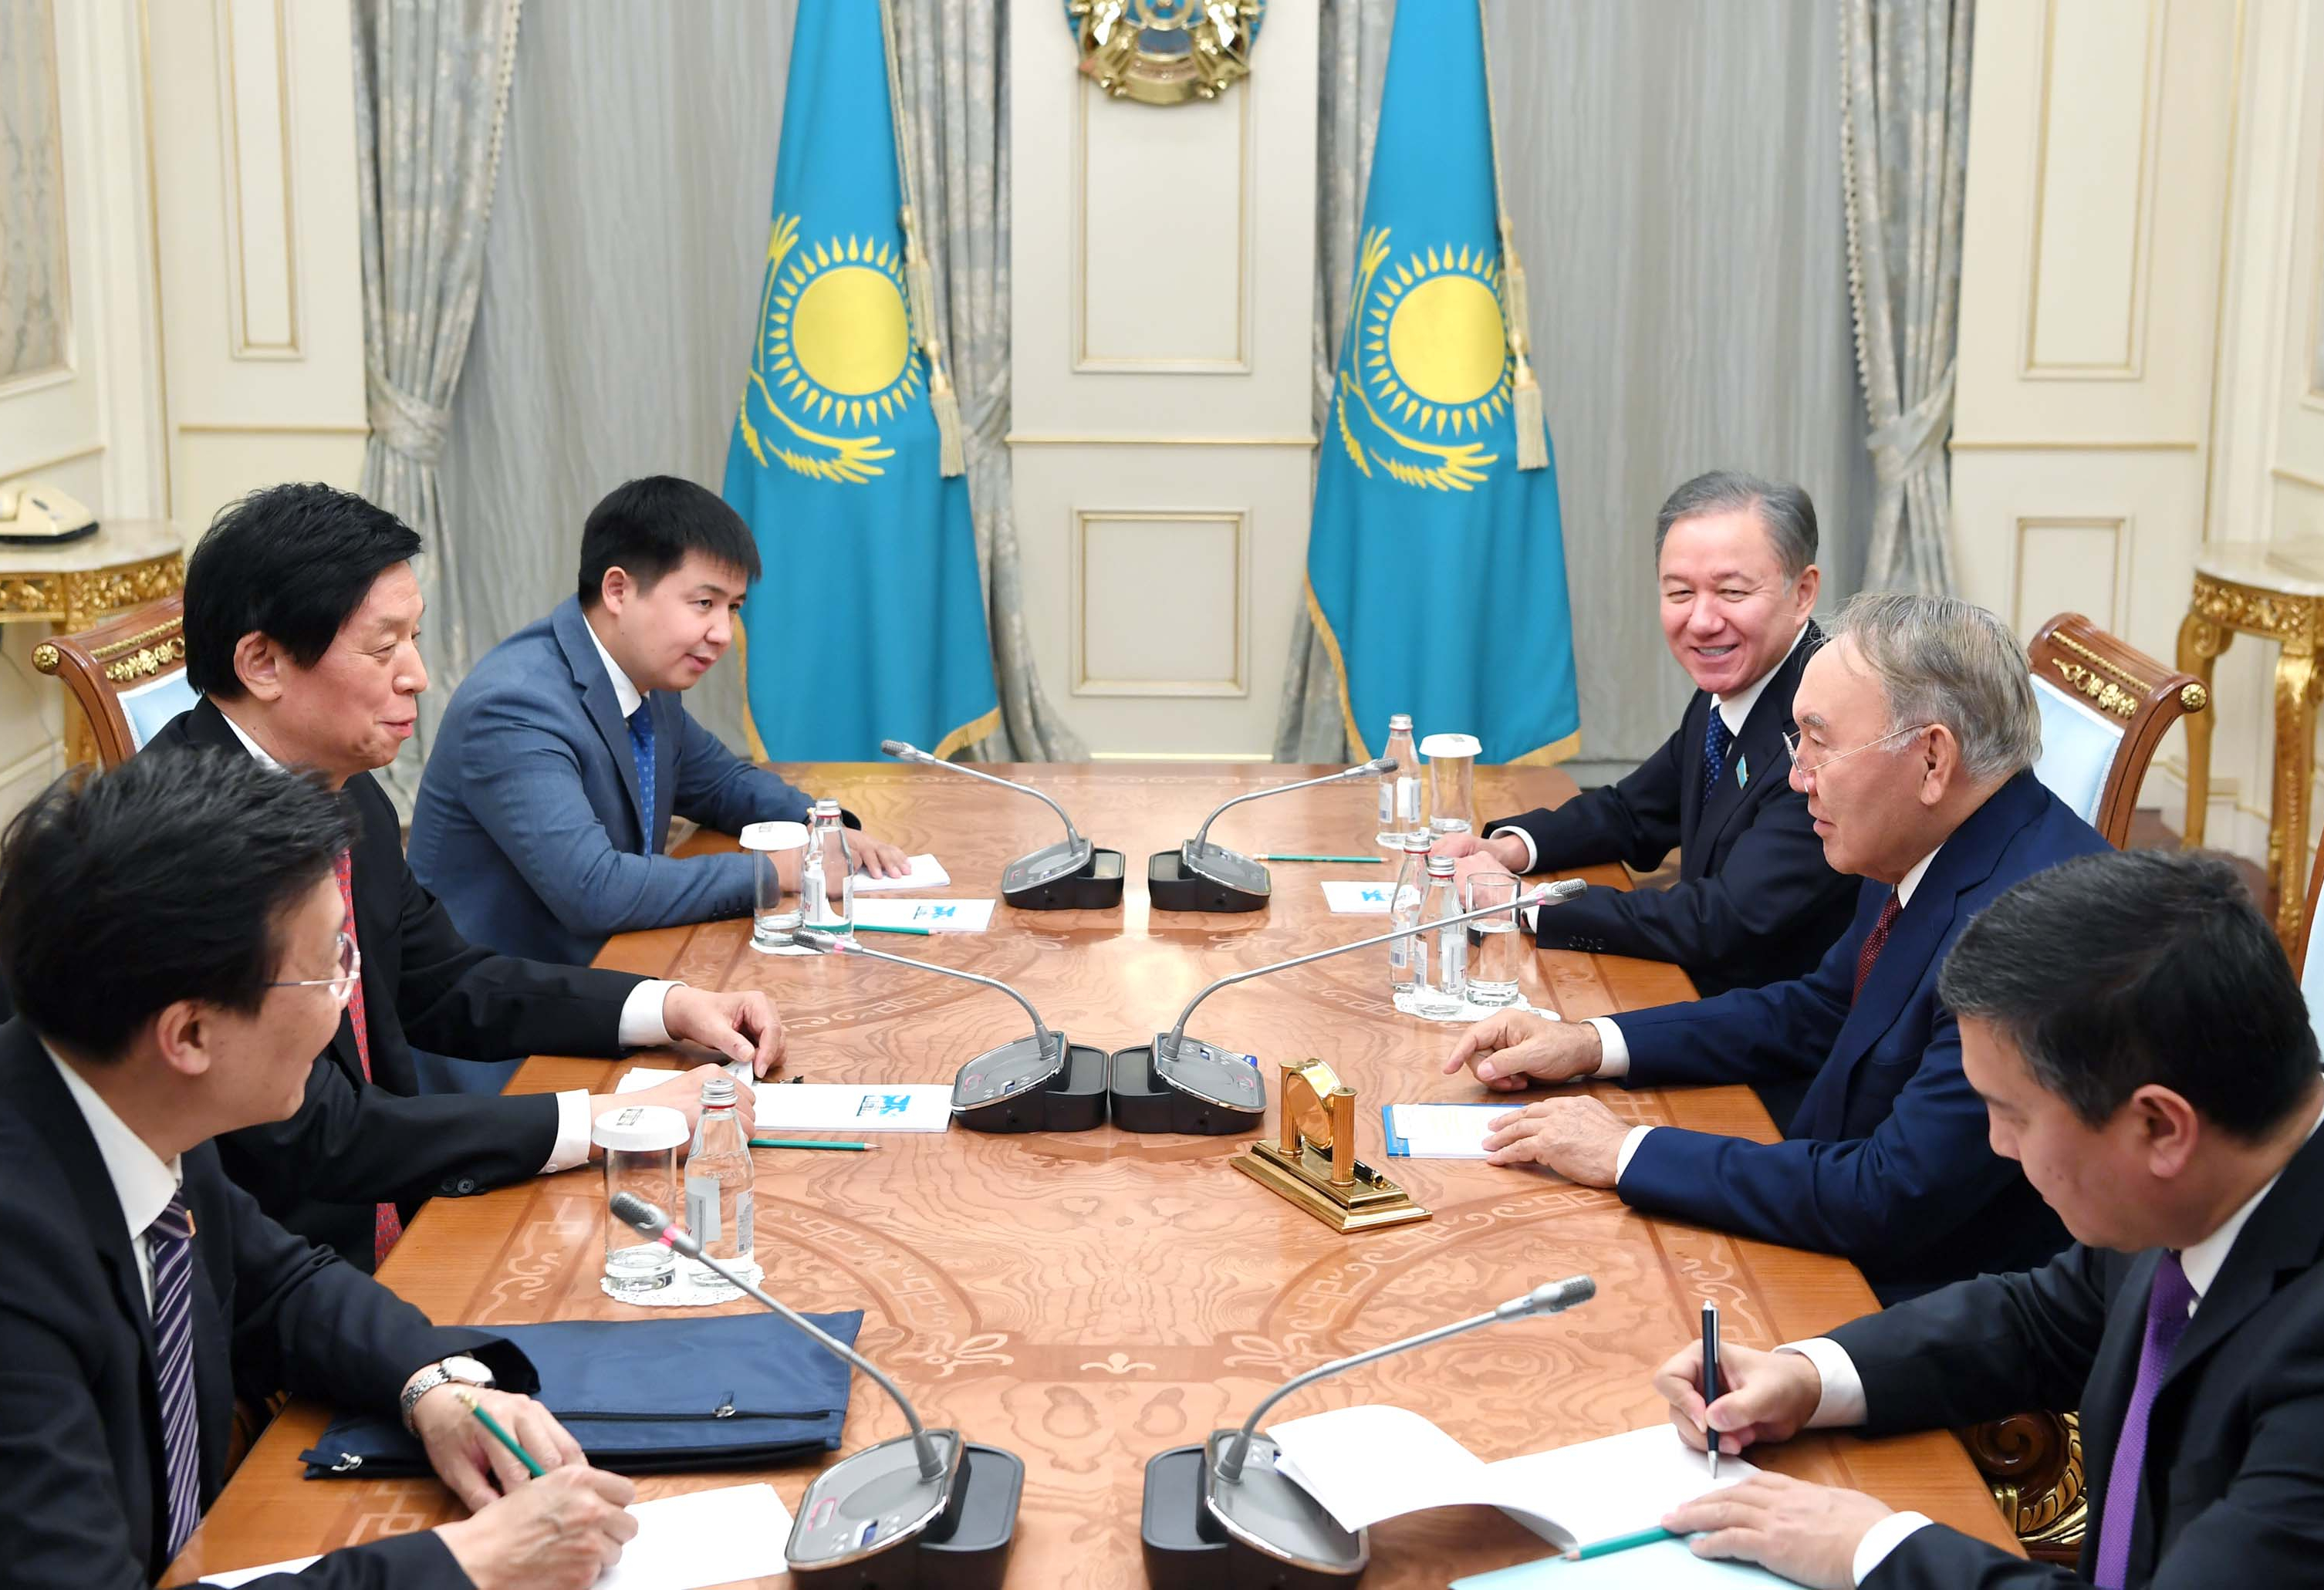 75d7dd2d80185857c7b0369330a88b79 - Nursultan Nazarbayev received the head of the Chinese Parliament